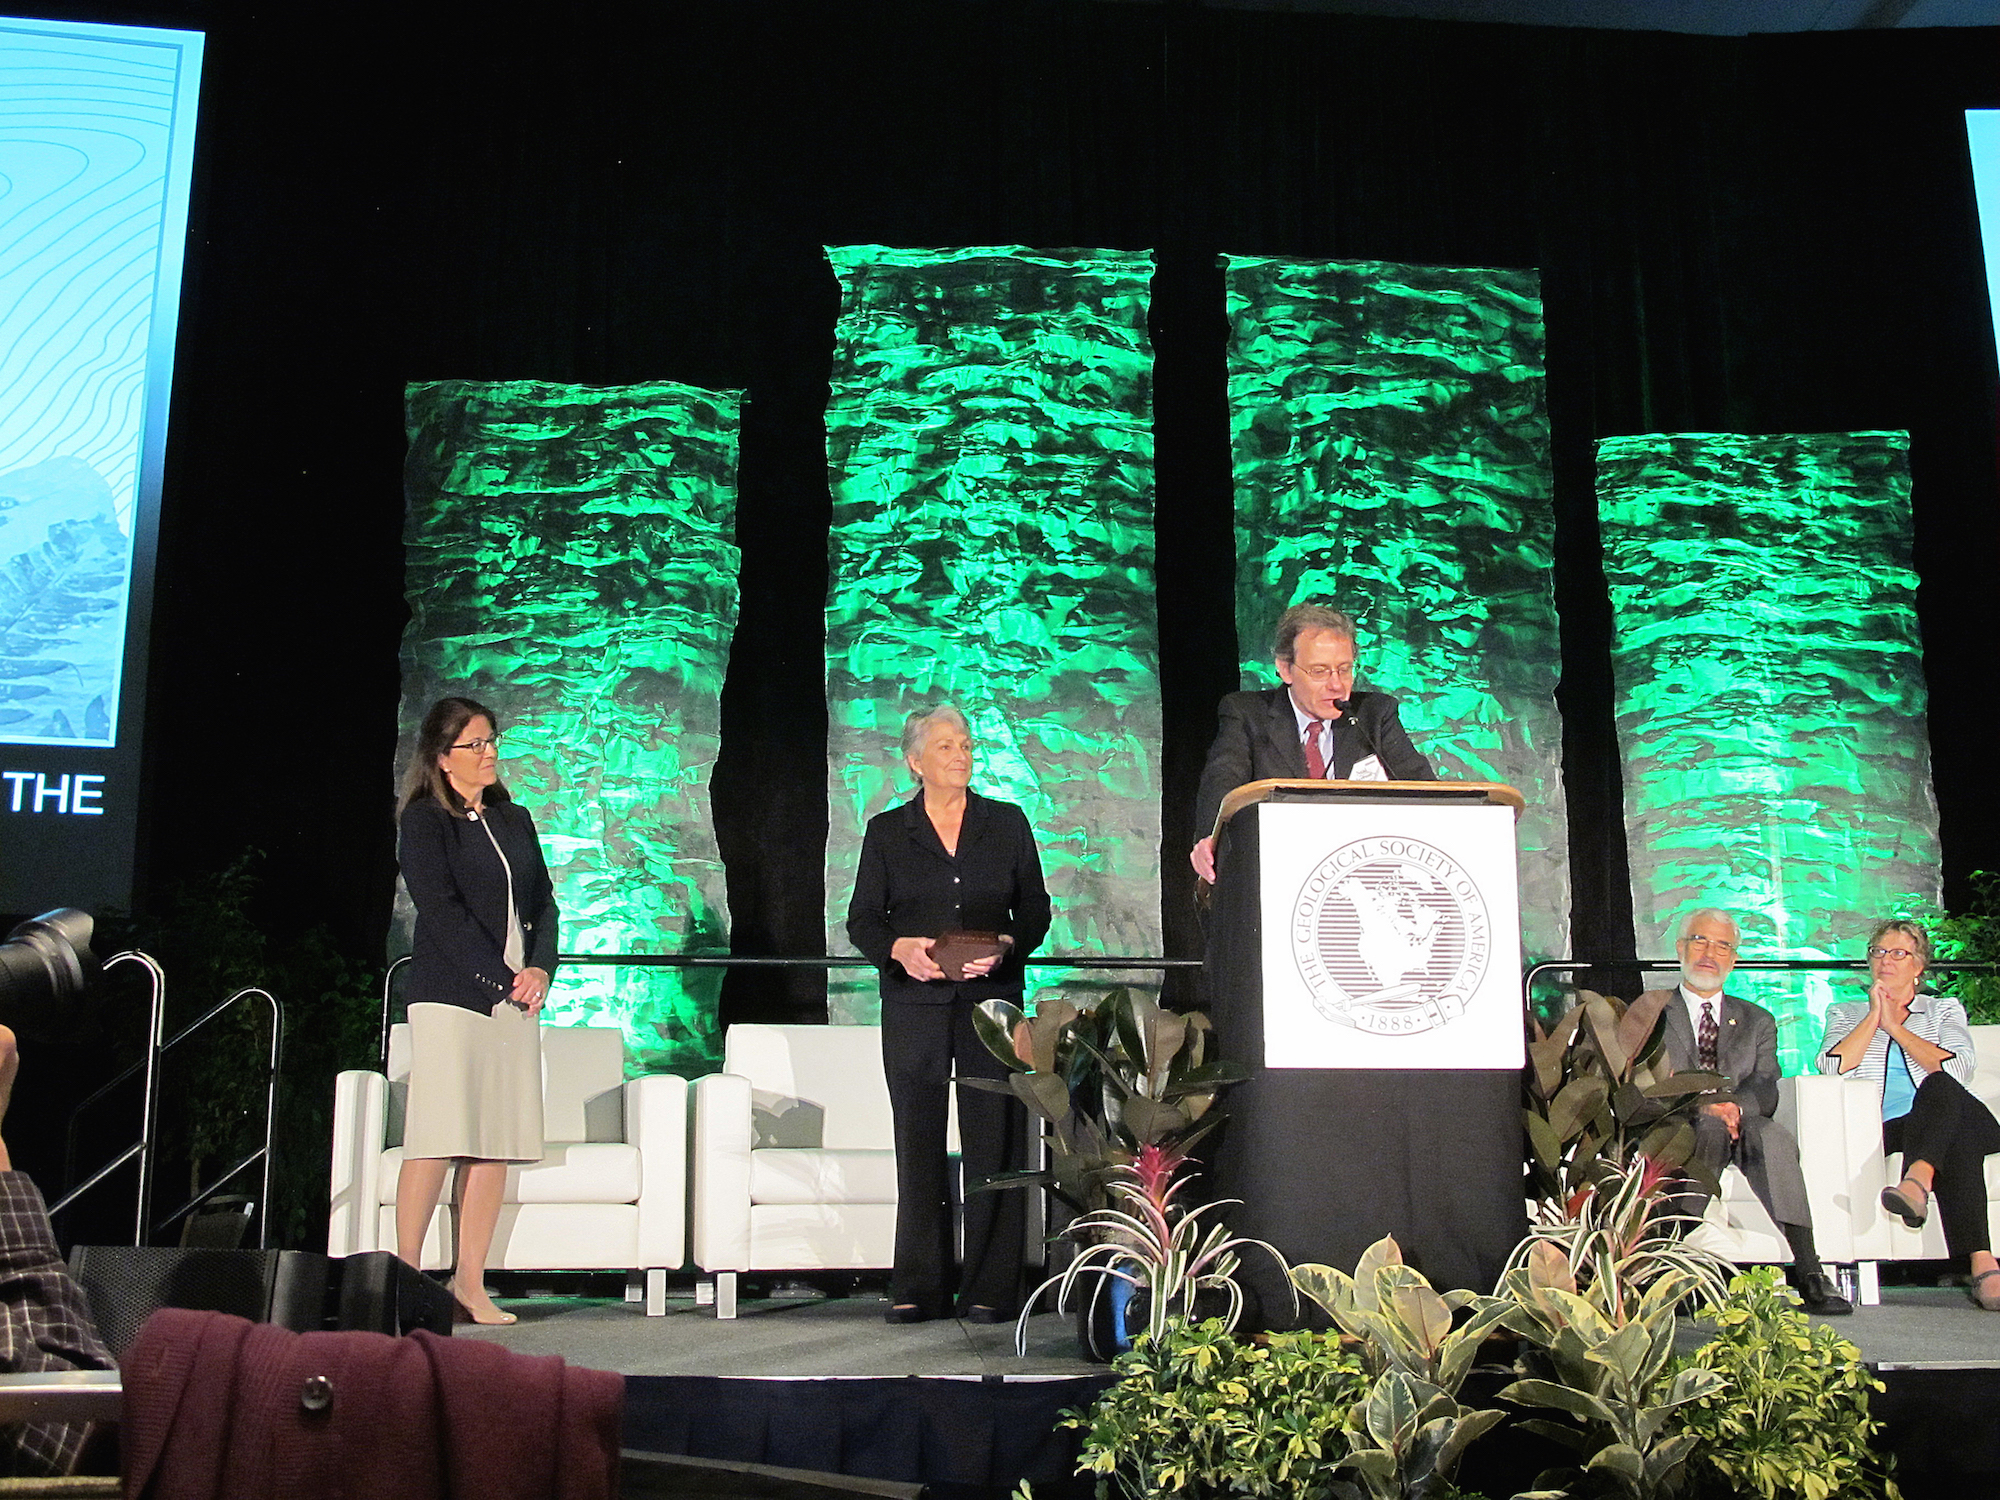 Neal Iverson stands behind a podium and plants on stage. A few people stand or sit in the back of the stage. The backdrop has four green column banners with rock patterns.